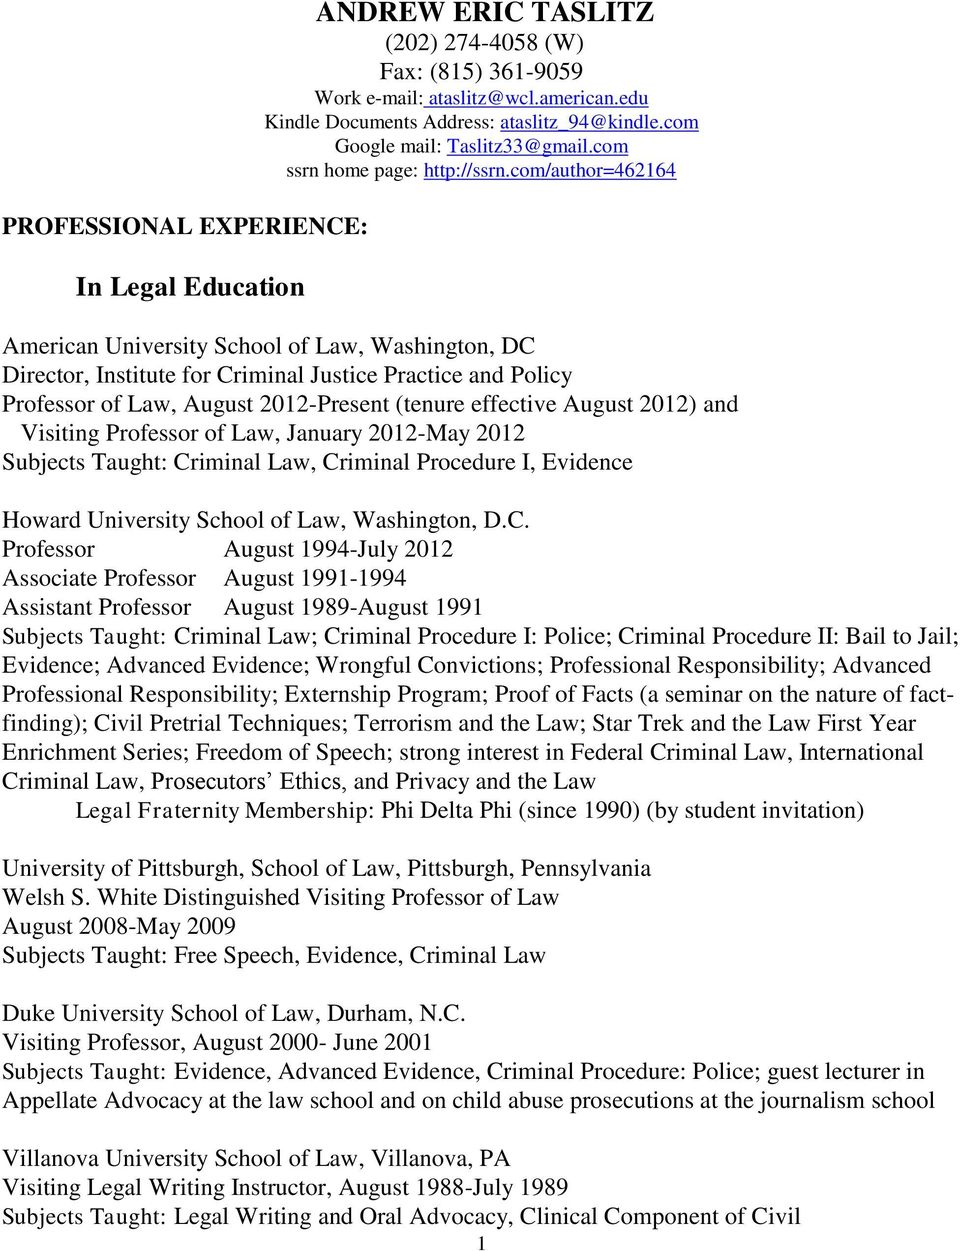 com/author=462164 American University School of Law, Washington, DC Director, Institute for Criminal Justice Practice and Policy Professor of Law, August 2012-Present (tenure effective August 2012)